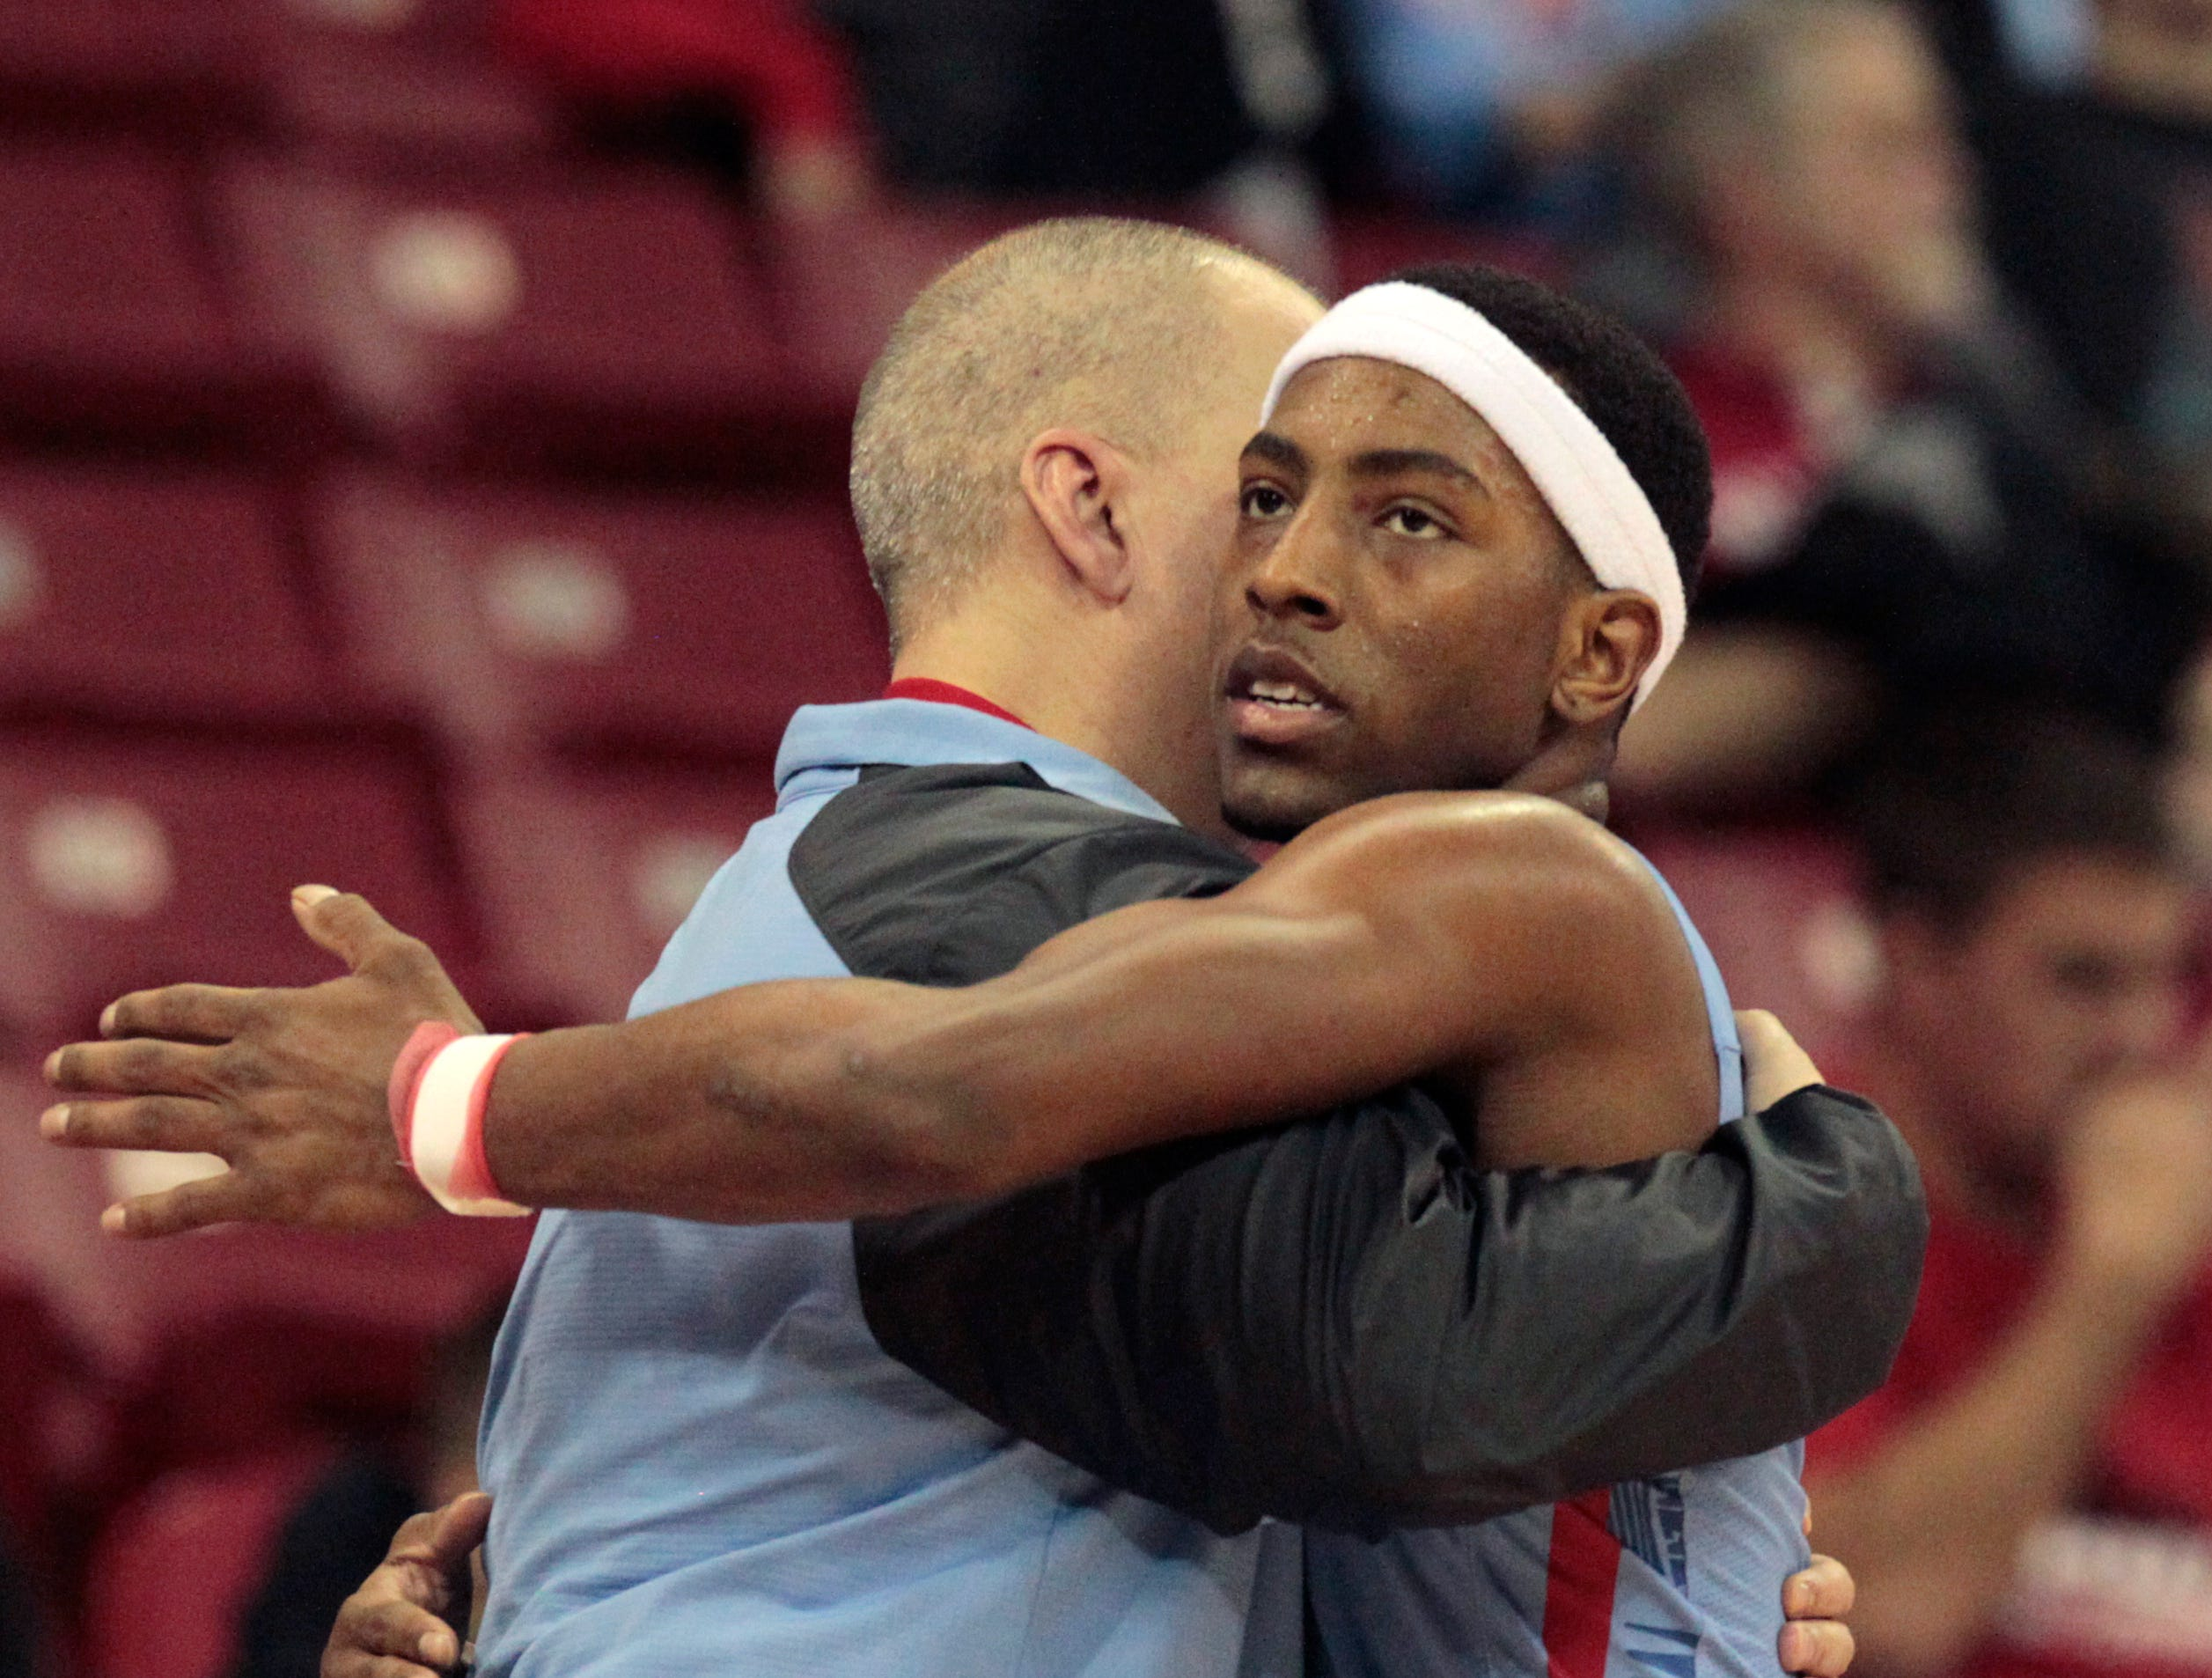 Arrowhead's Trevell Cunningham (2) hugs coach Craig Haase after their loss to Stevens Point in  the Division 1 championship game at the 2017 WIAA boys' state basketball championships.